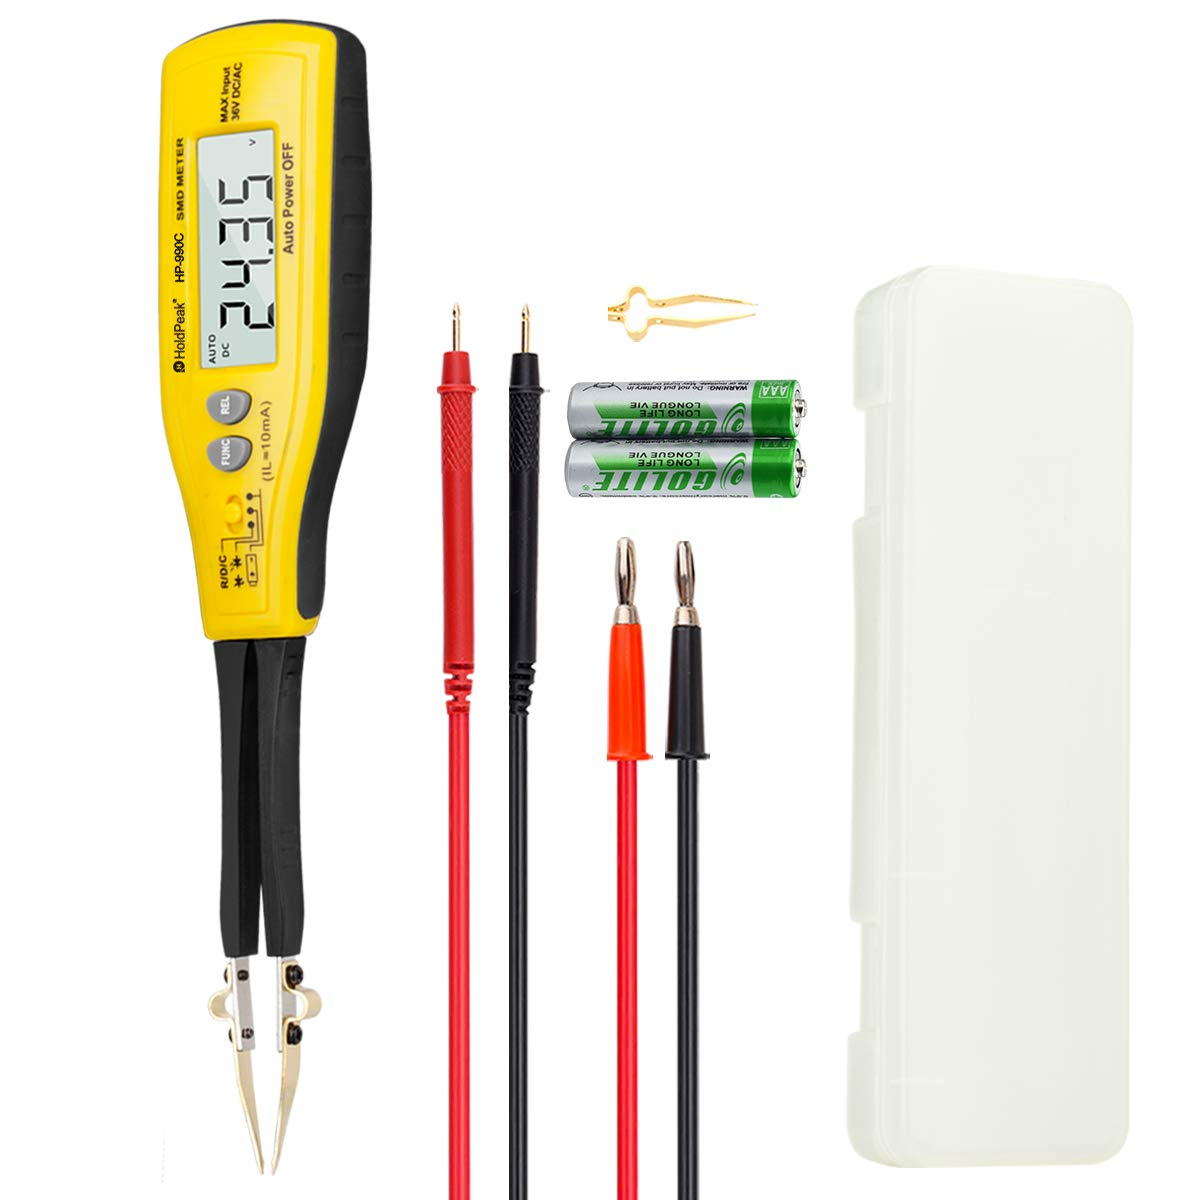 Holdpeak HP-990C Digital Smart SMD Tester 6000 Counts DMM Handheld Resistance Capacitance Tester,Digital Multimeter Auto Scan with Spare Test Pins (Battery Included)